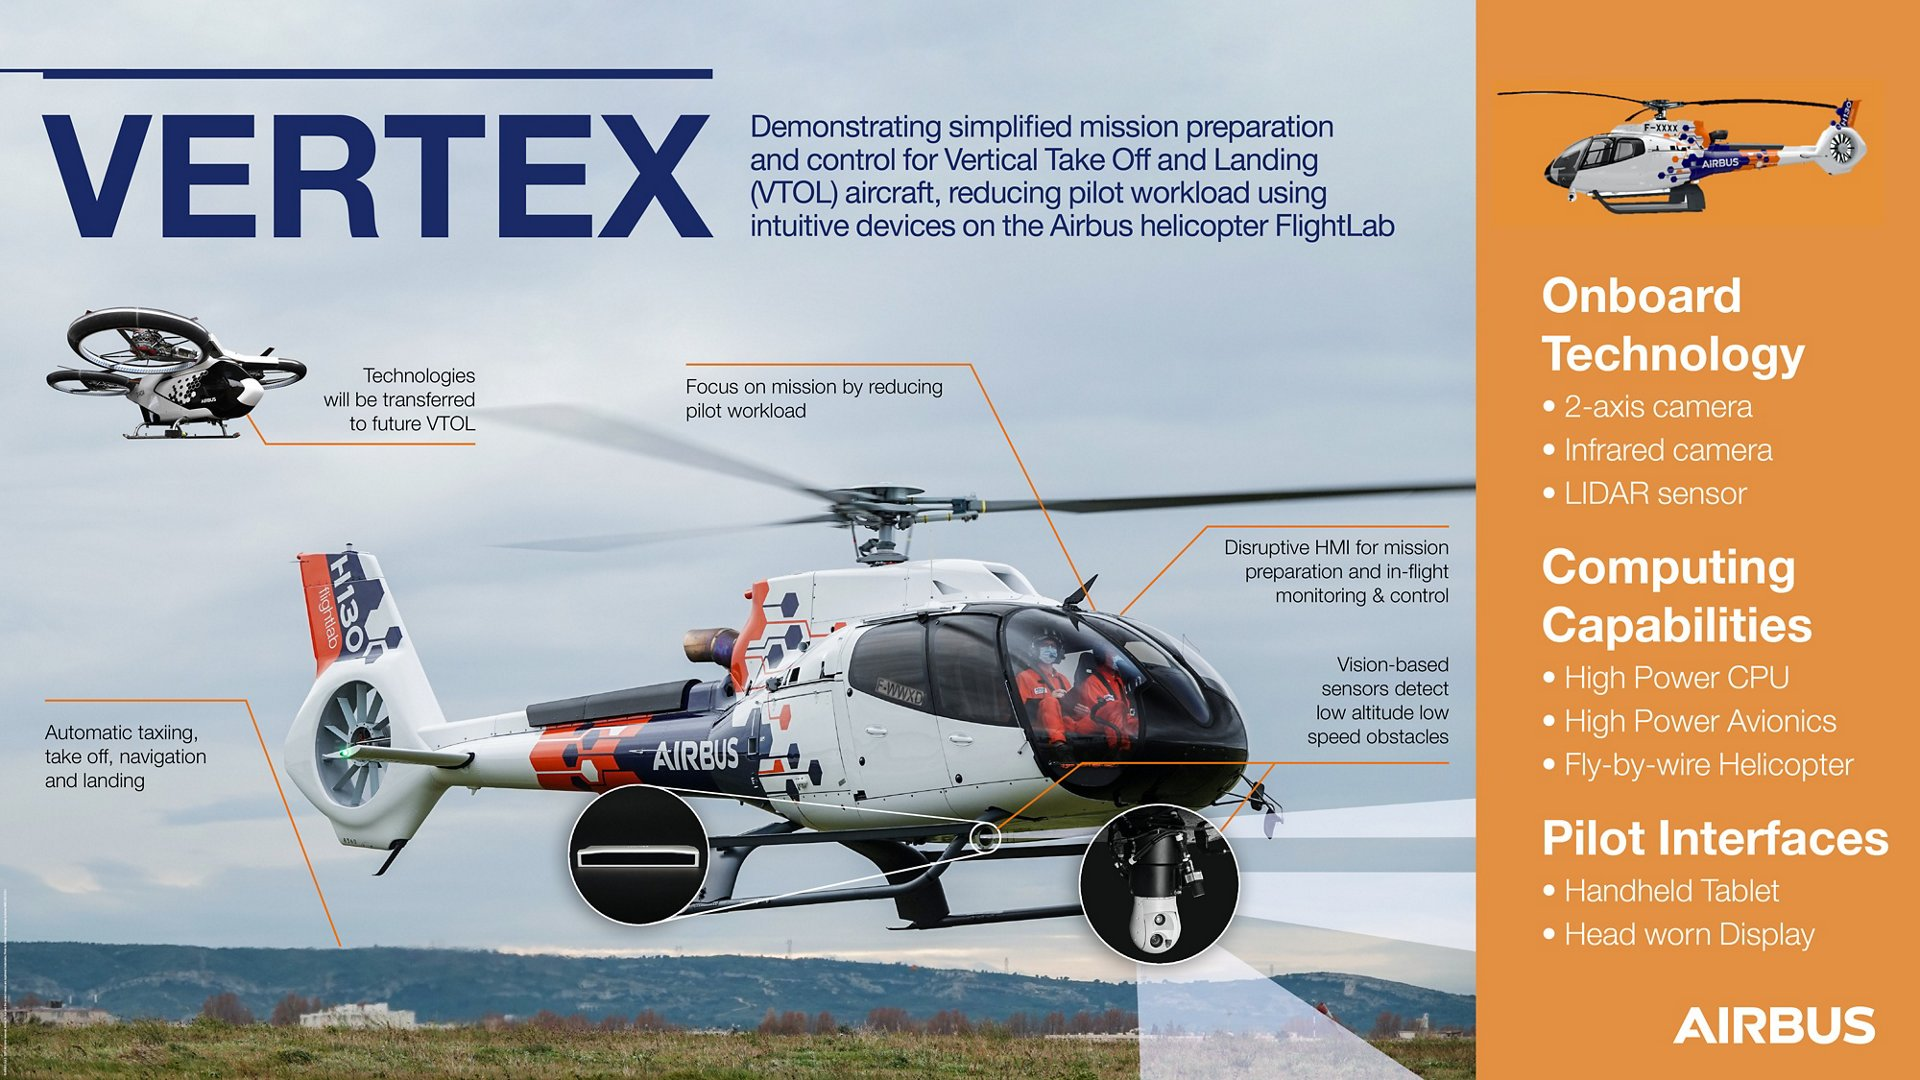 Airbus is introducing autonomous features to its helicopter Flightlab through a project code-named Vertex.